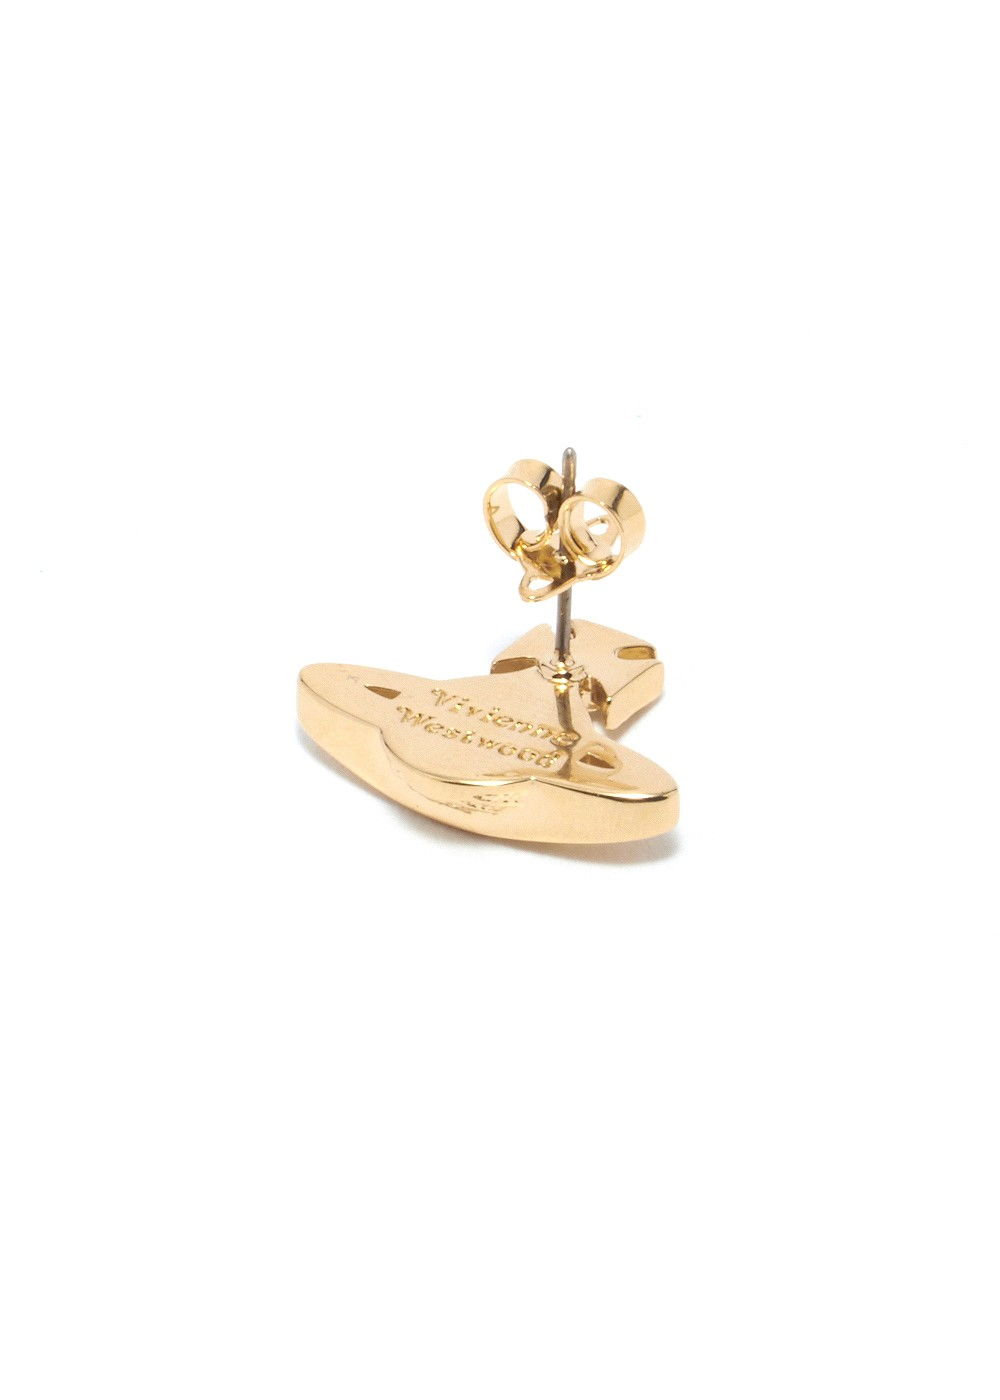 【最大64%OFF】MINNIE BAS RELIEF EARRINGS|GOLD|ピアス|Vivienne Westwood Accessory